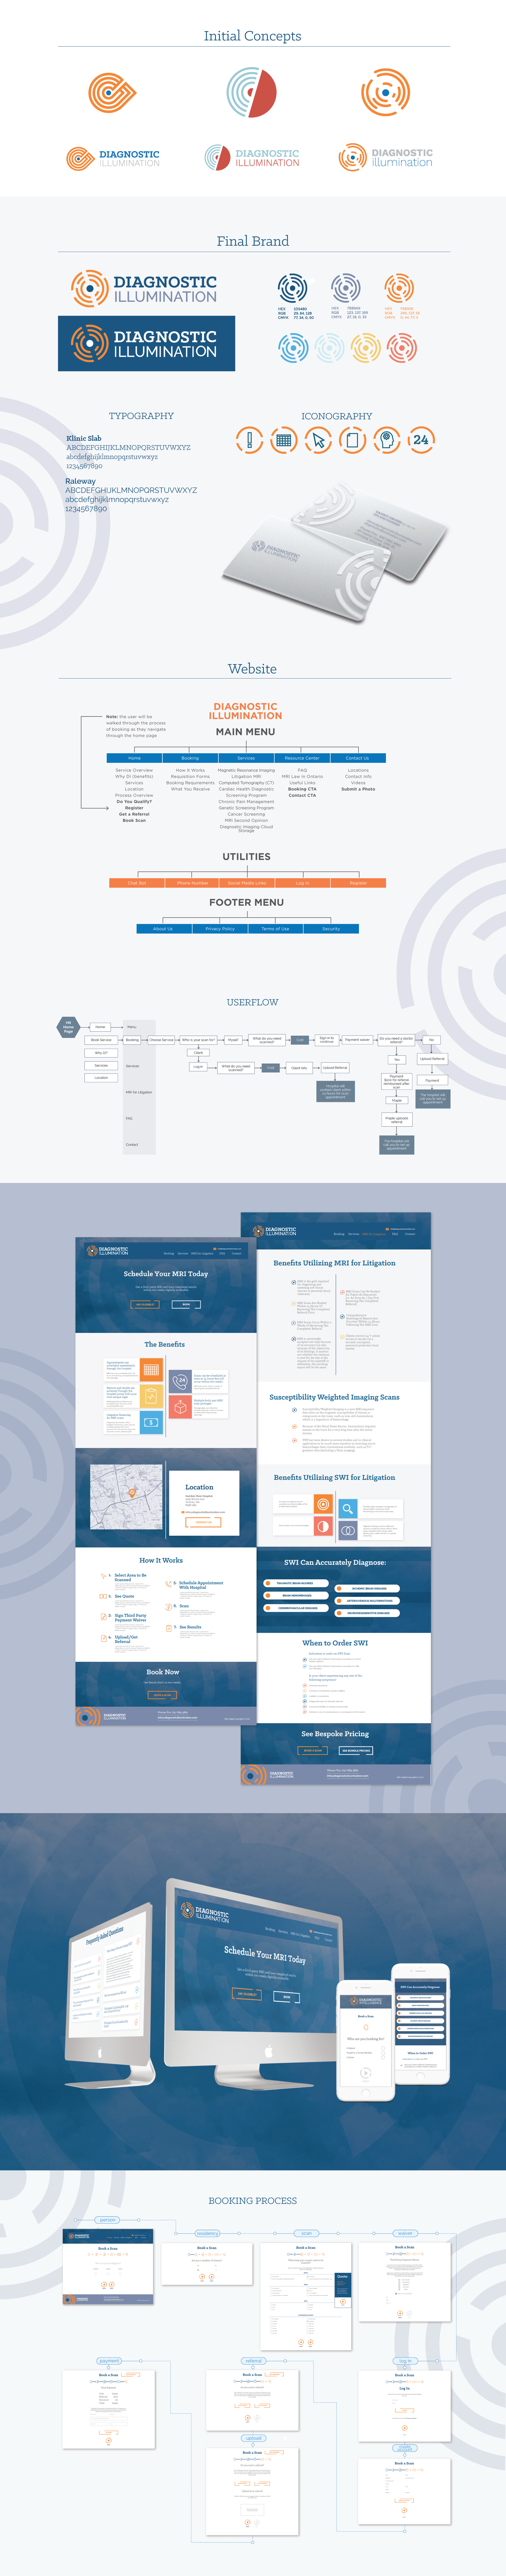 Diagnostic Illumination Website Design and Branding Showcase